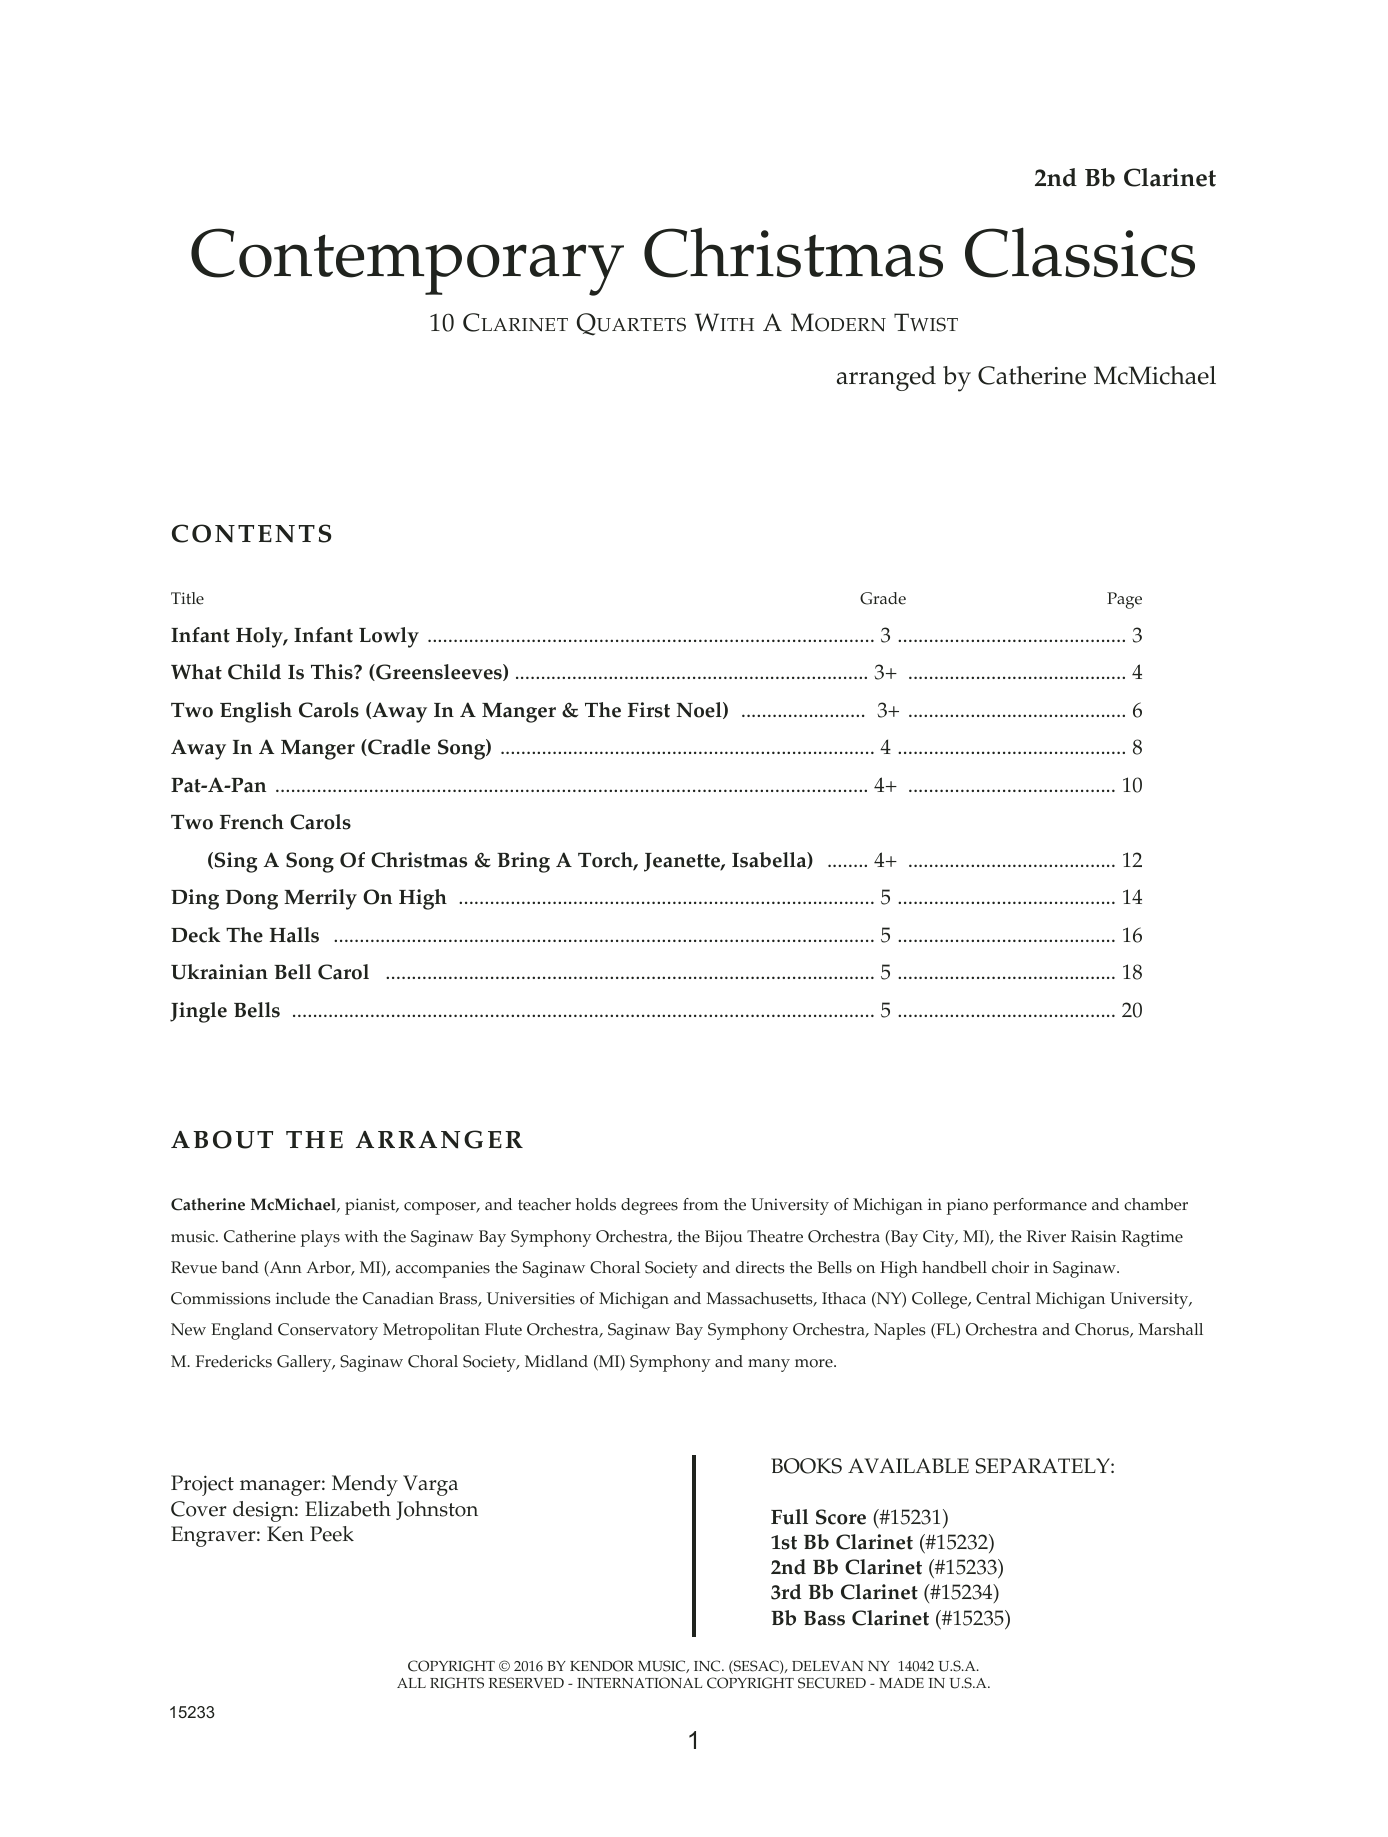 Catherine McMichael Contemporary Christmas Classics - 2nd Bb Clarinet sheet music notes and chords